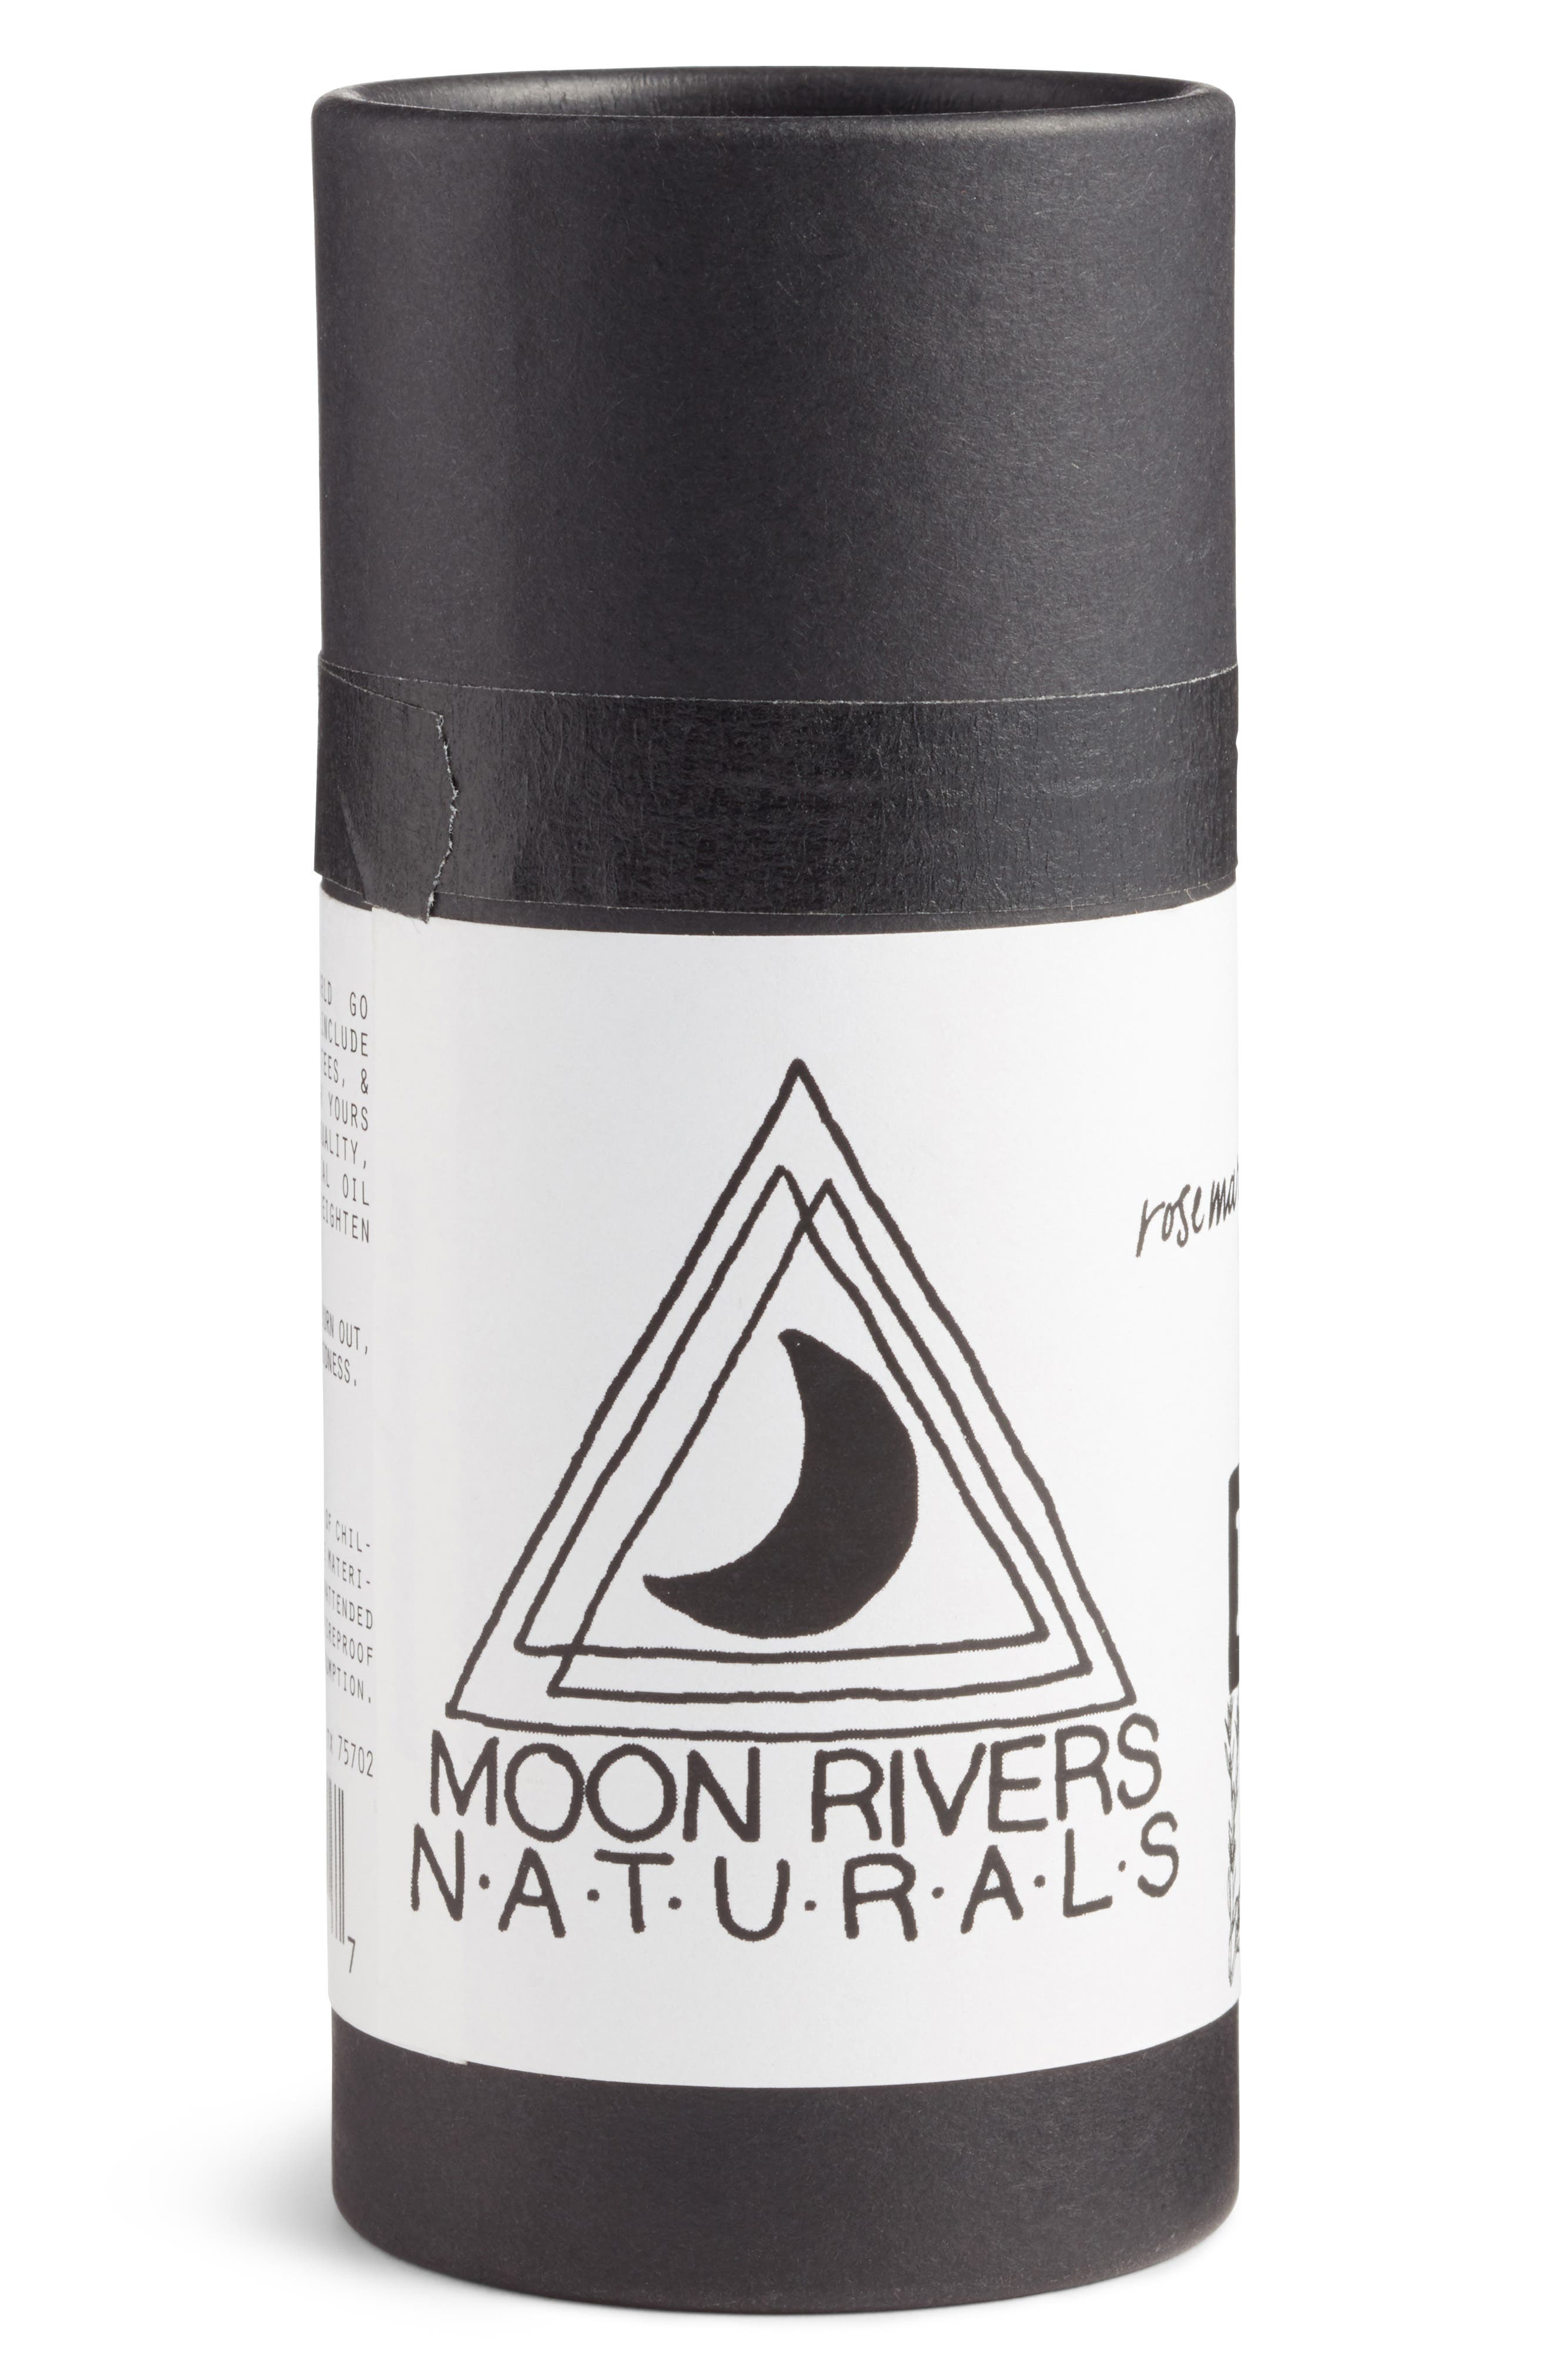 Moon Rivers Naturals Rosemary, Patchouli & Cedarwood Incense